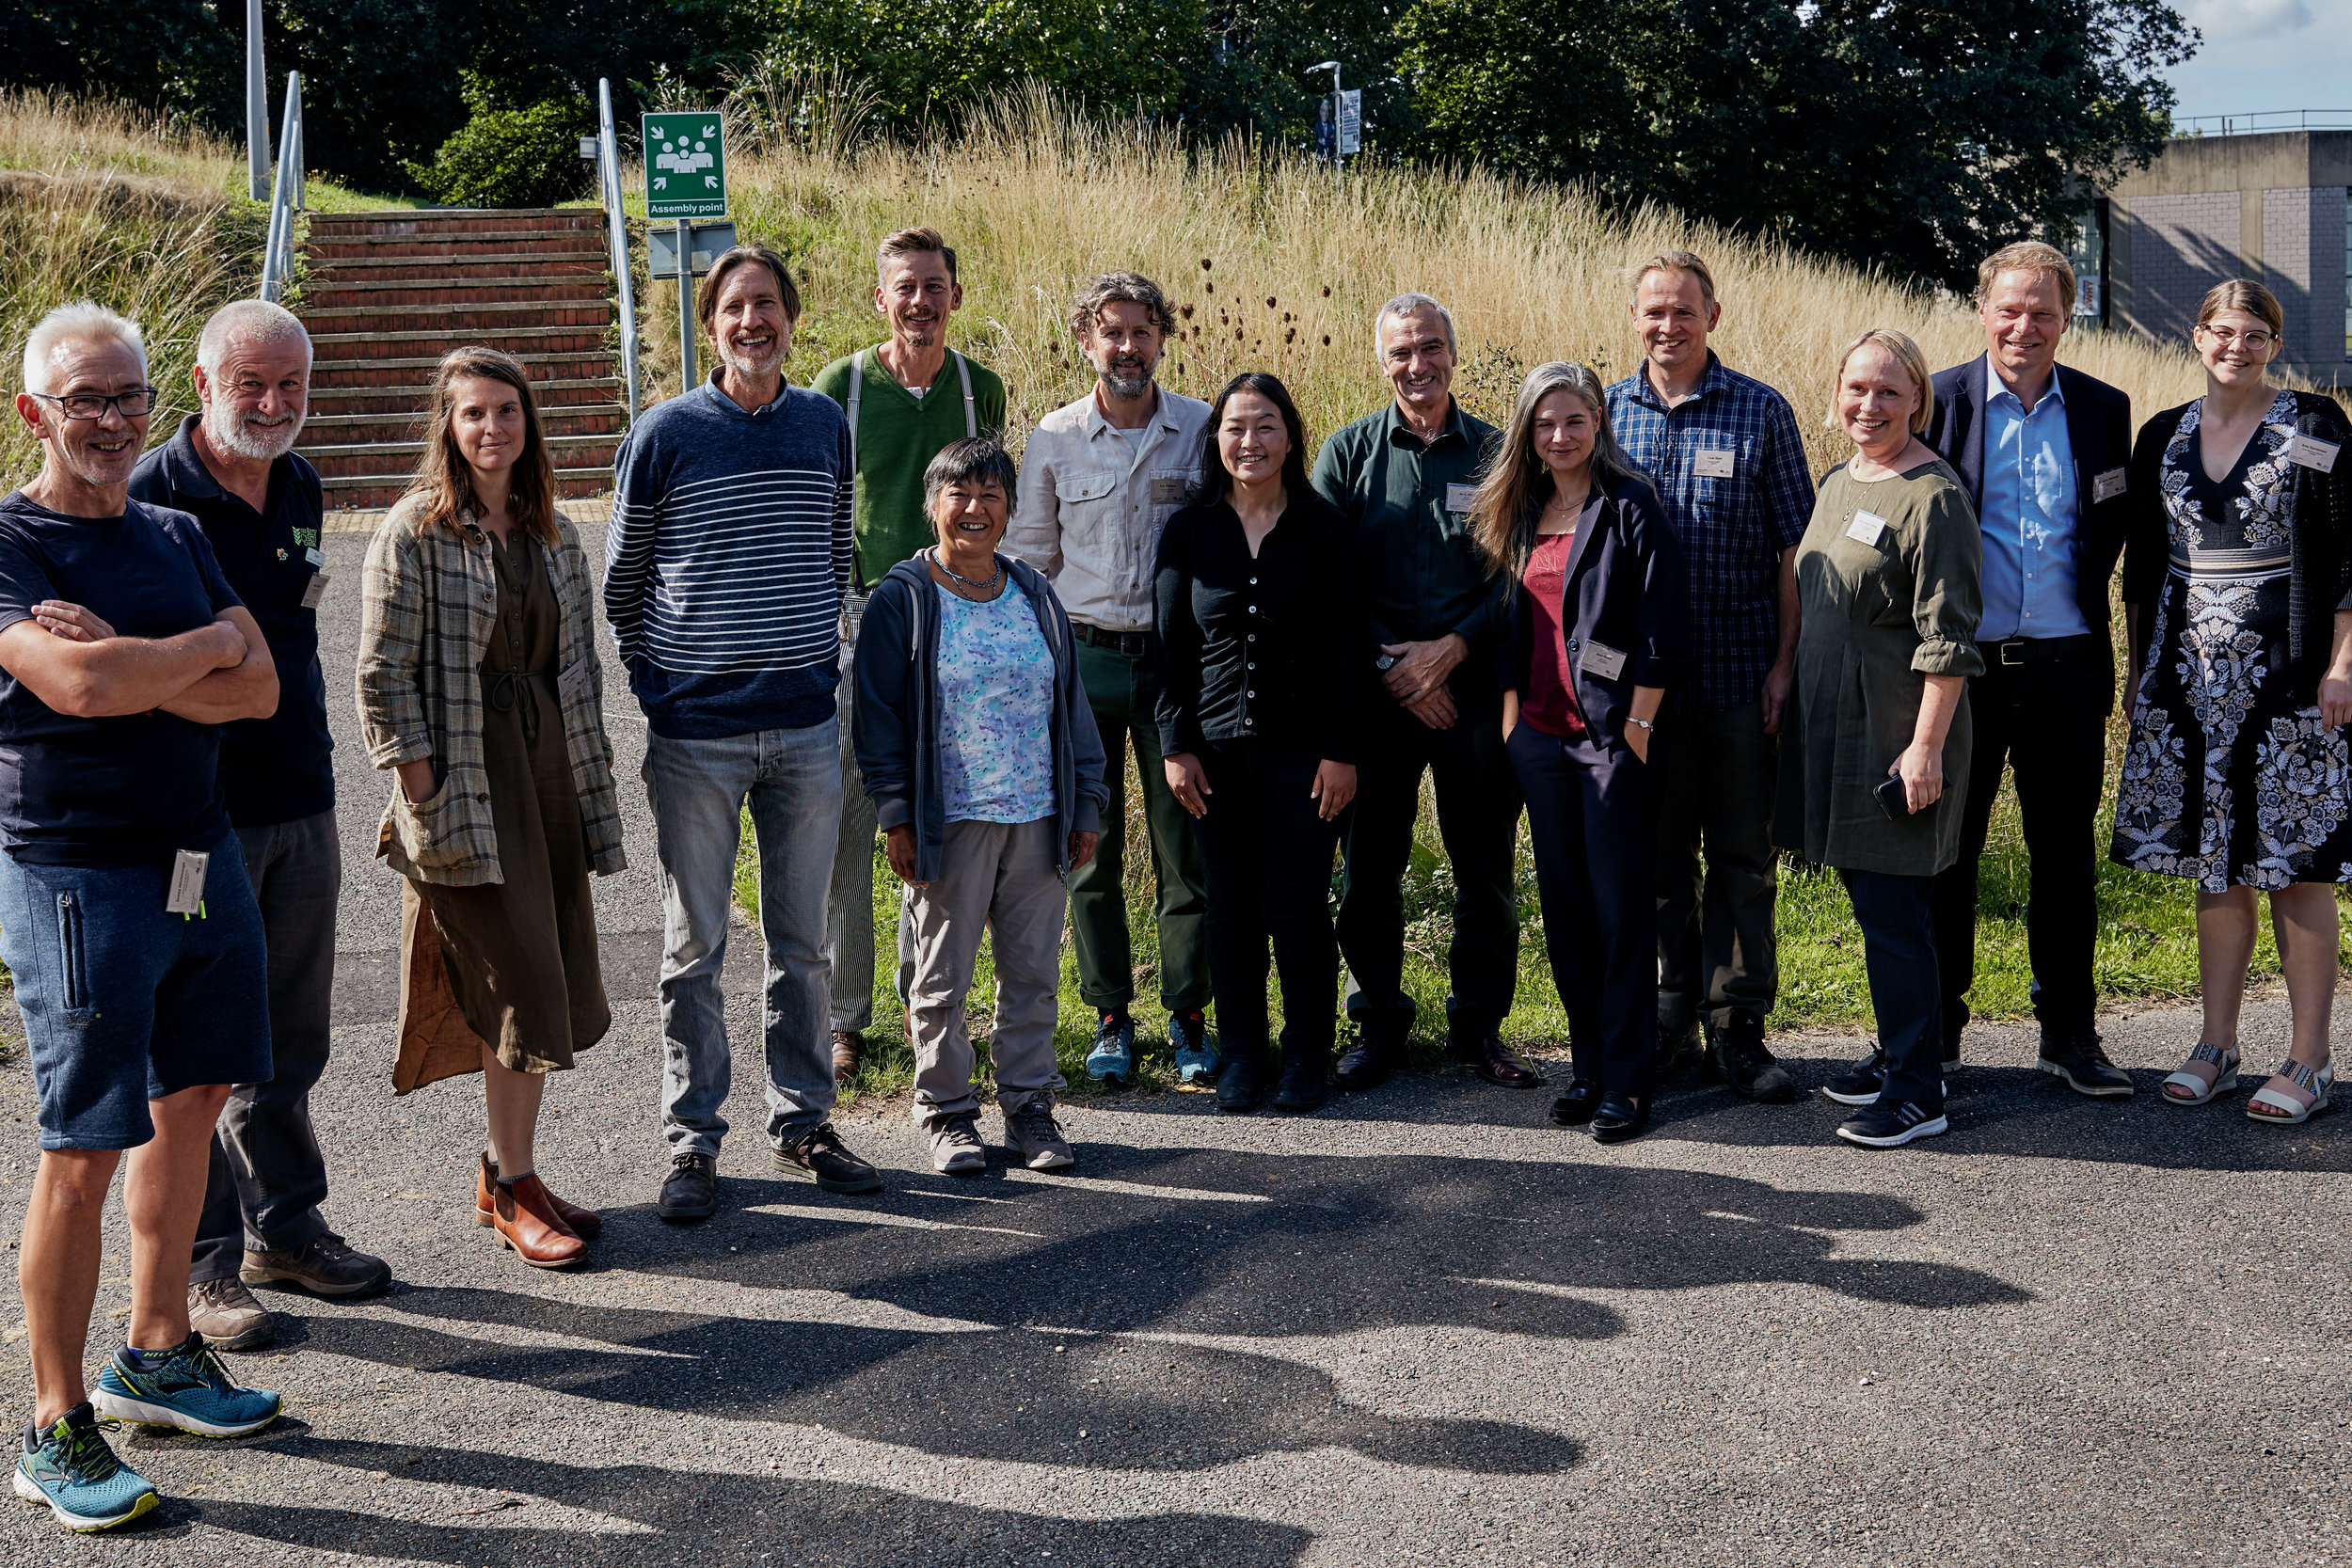 The Beth Chatto Symposium Speakers and Organizing Committee (from left): James Hitchmough, David Ward, Taylor Johnston, Olivier Filippi, Peter Janke, Marina Christopher, Dan Pearson, Midori Shintani, Keith Wiley, Andi Pettis, Peter Korn, Åsa Gregers-Warg, Cassian Schmidt, Amy Sanderson